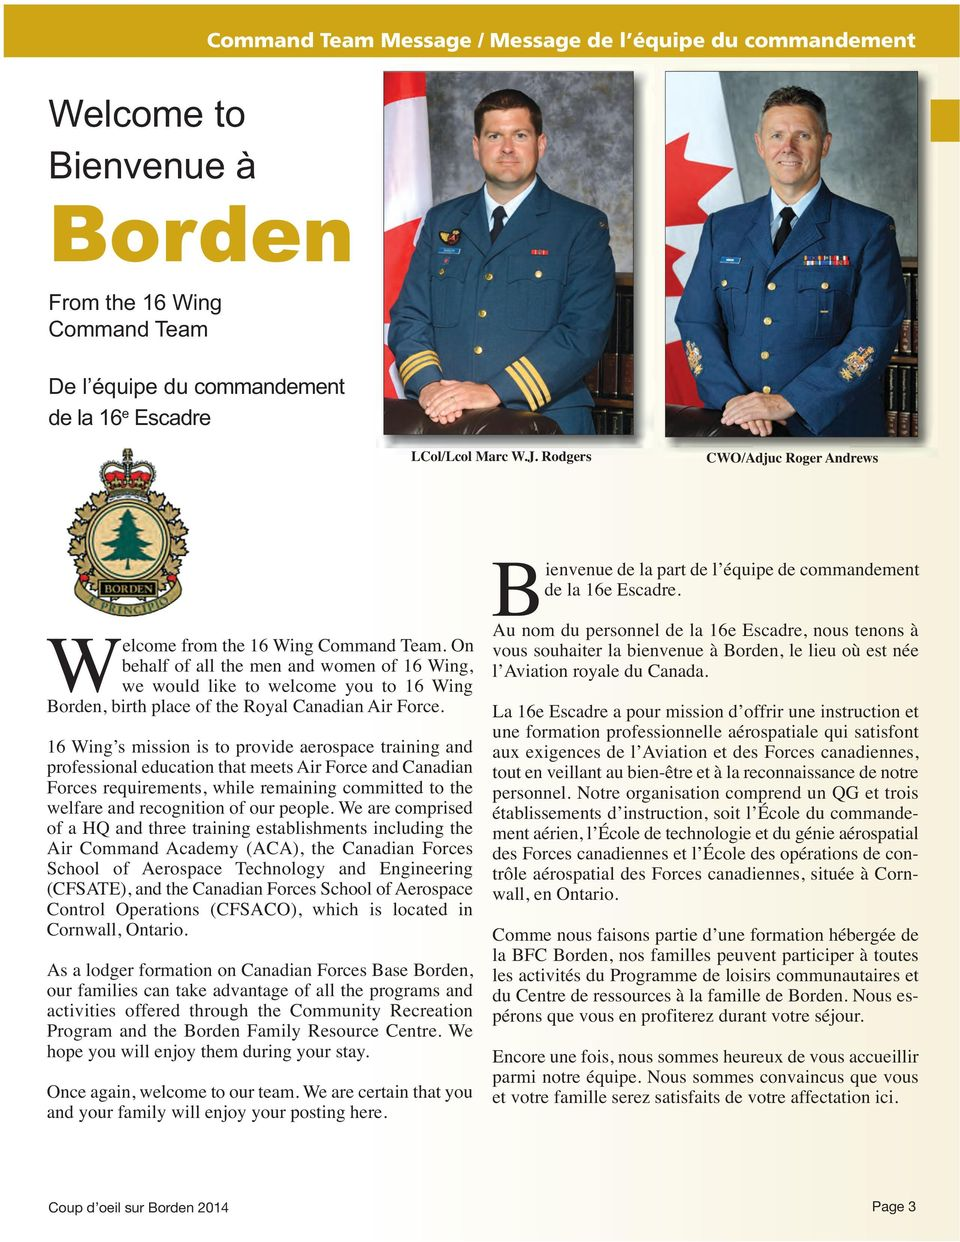 On behalf of all the men and women of 16 Wing, we would like to welcome you to 16 Wing Borden, birth place of the Royal Canadian Air Force.